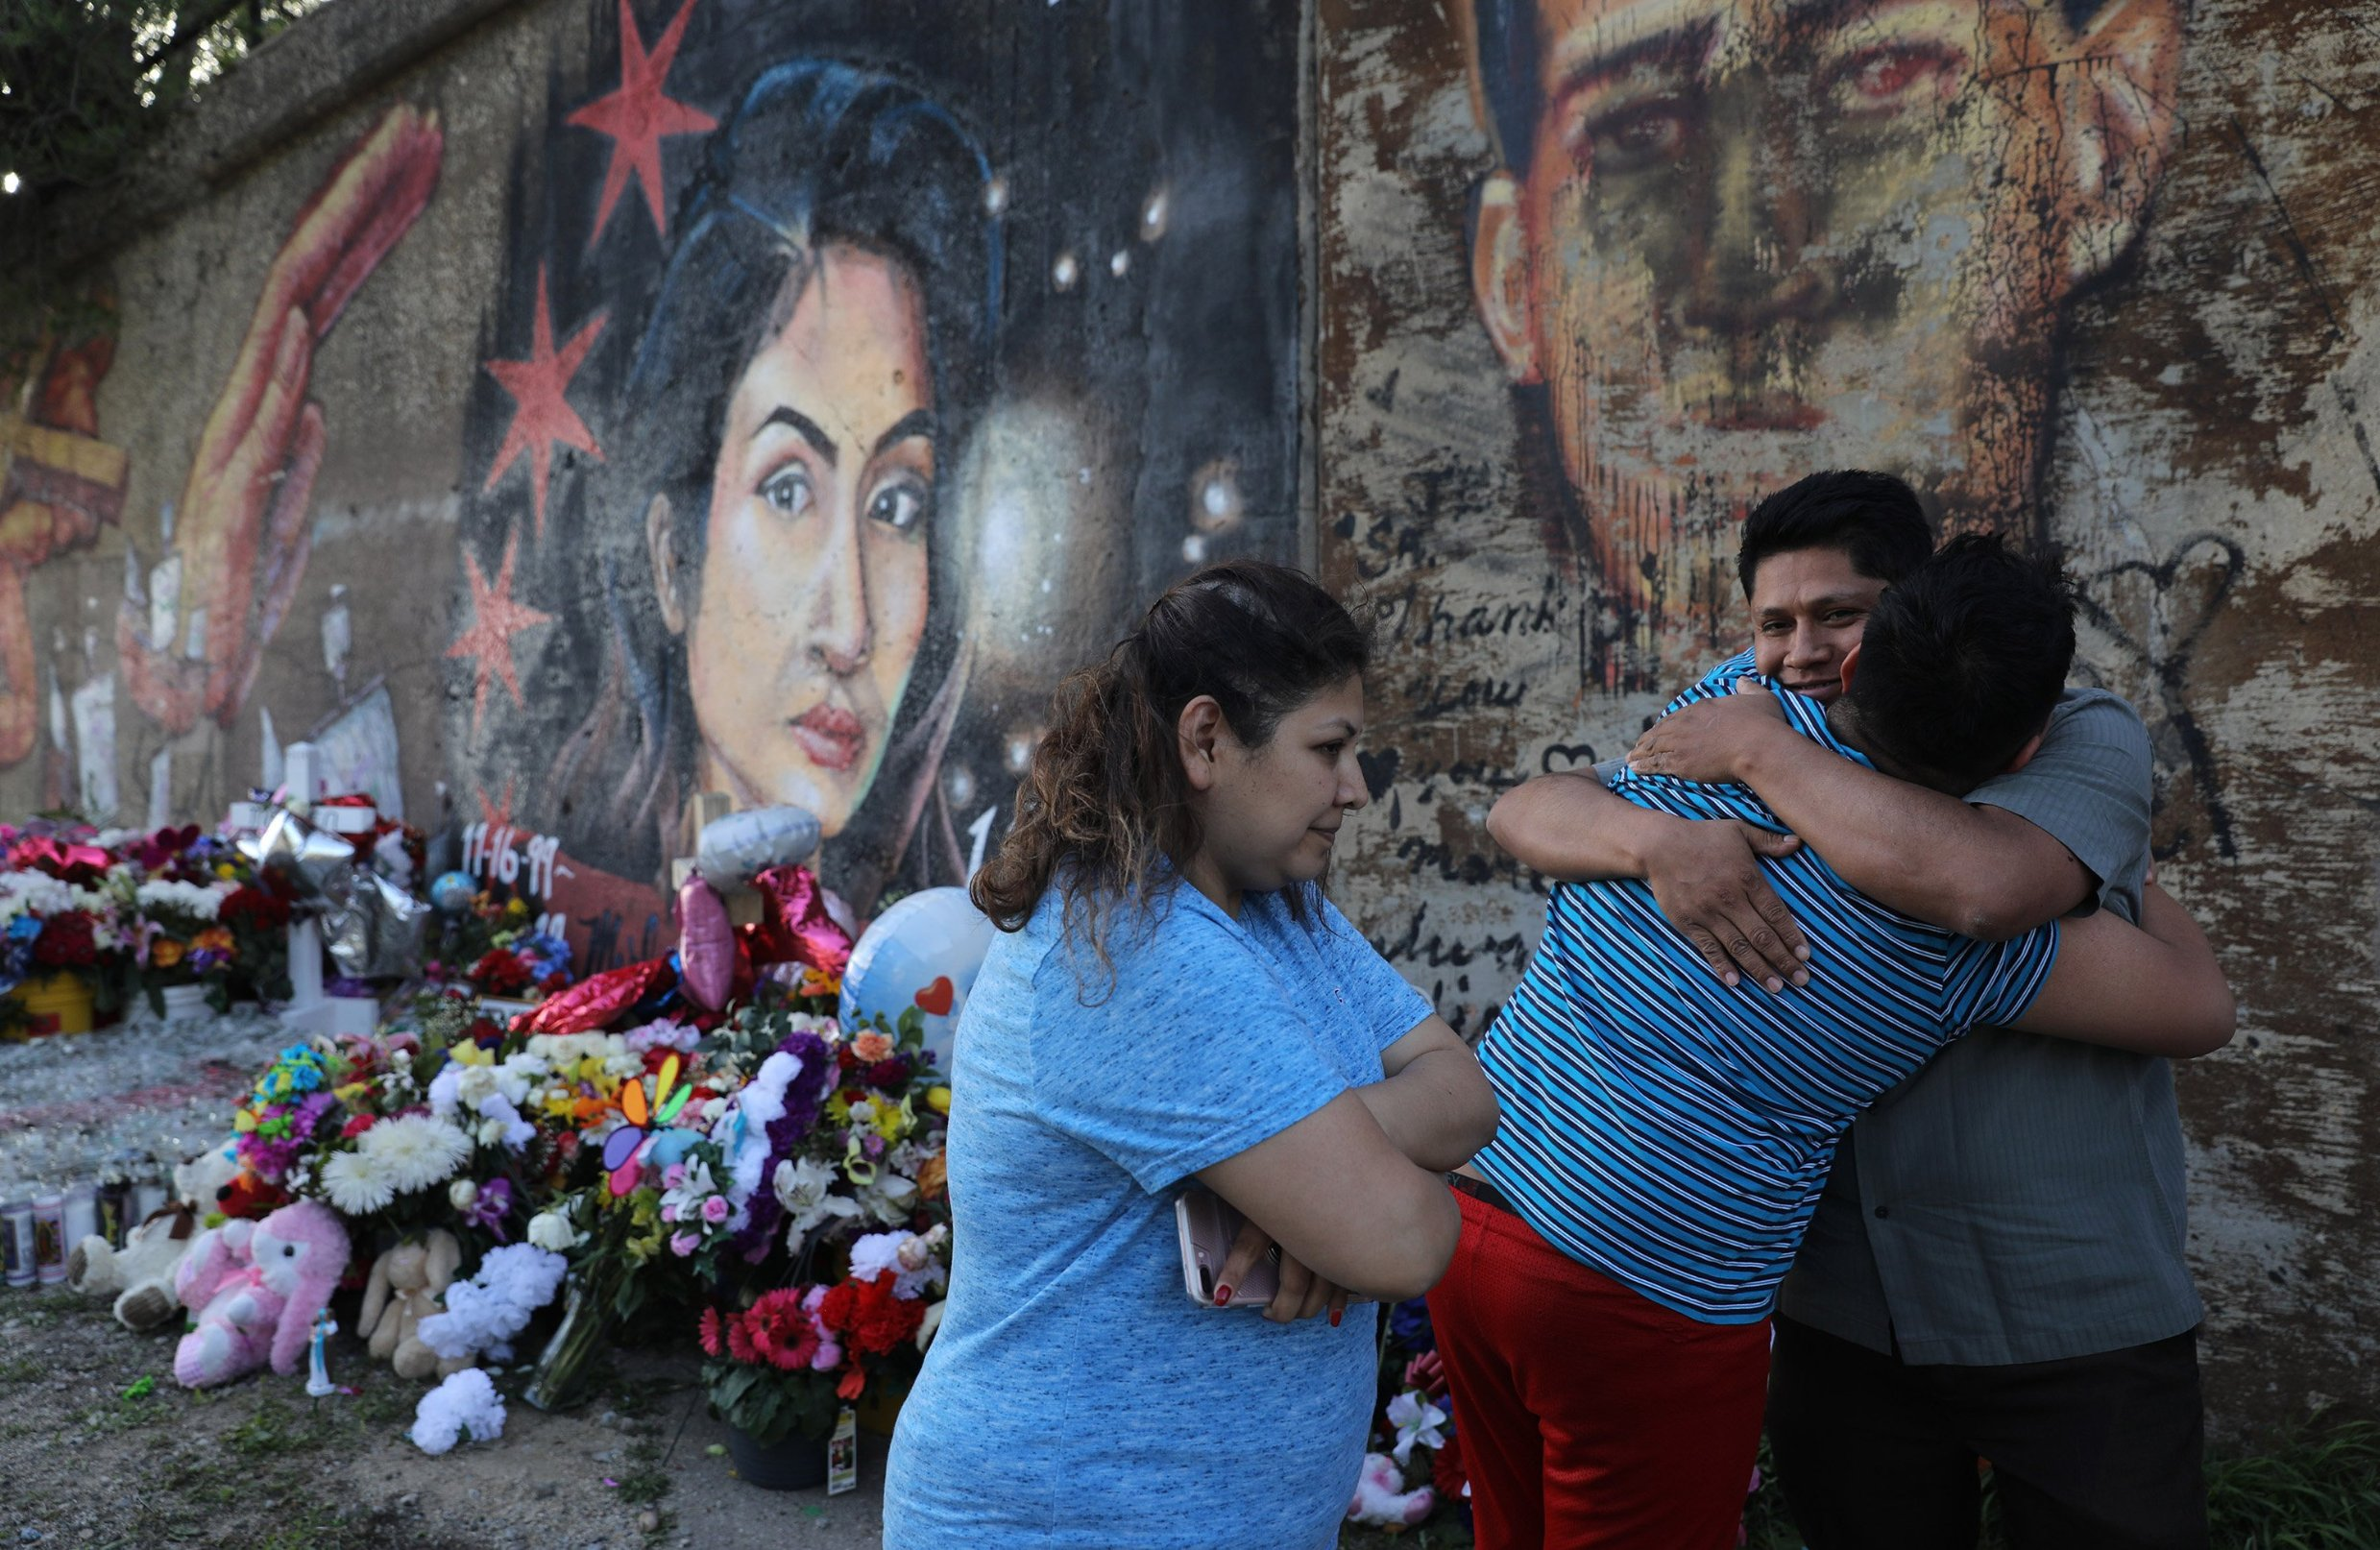 May 22, 2019 - Chicago, IL, USA - Marlen Ochoa-Lopez's father Arnulfo Ochoa gets a surprise hug from his 13-year-old son Oscar, while visiting a mural of Marlen painted by Milton Coronado, in Pilsen, Wednesday, May 22, 2019., Image: 436069735, License: Rights-managed, Restrictions: , Model Release: no, Credit line: Profimedia, Zuma Press - News